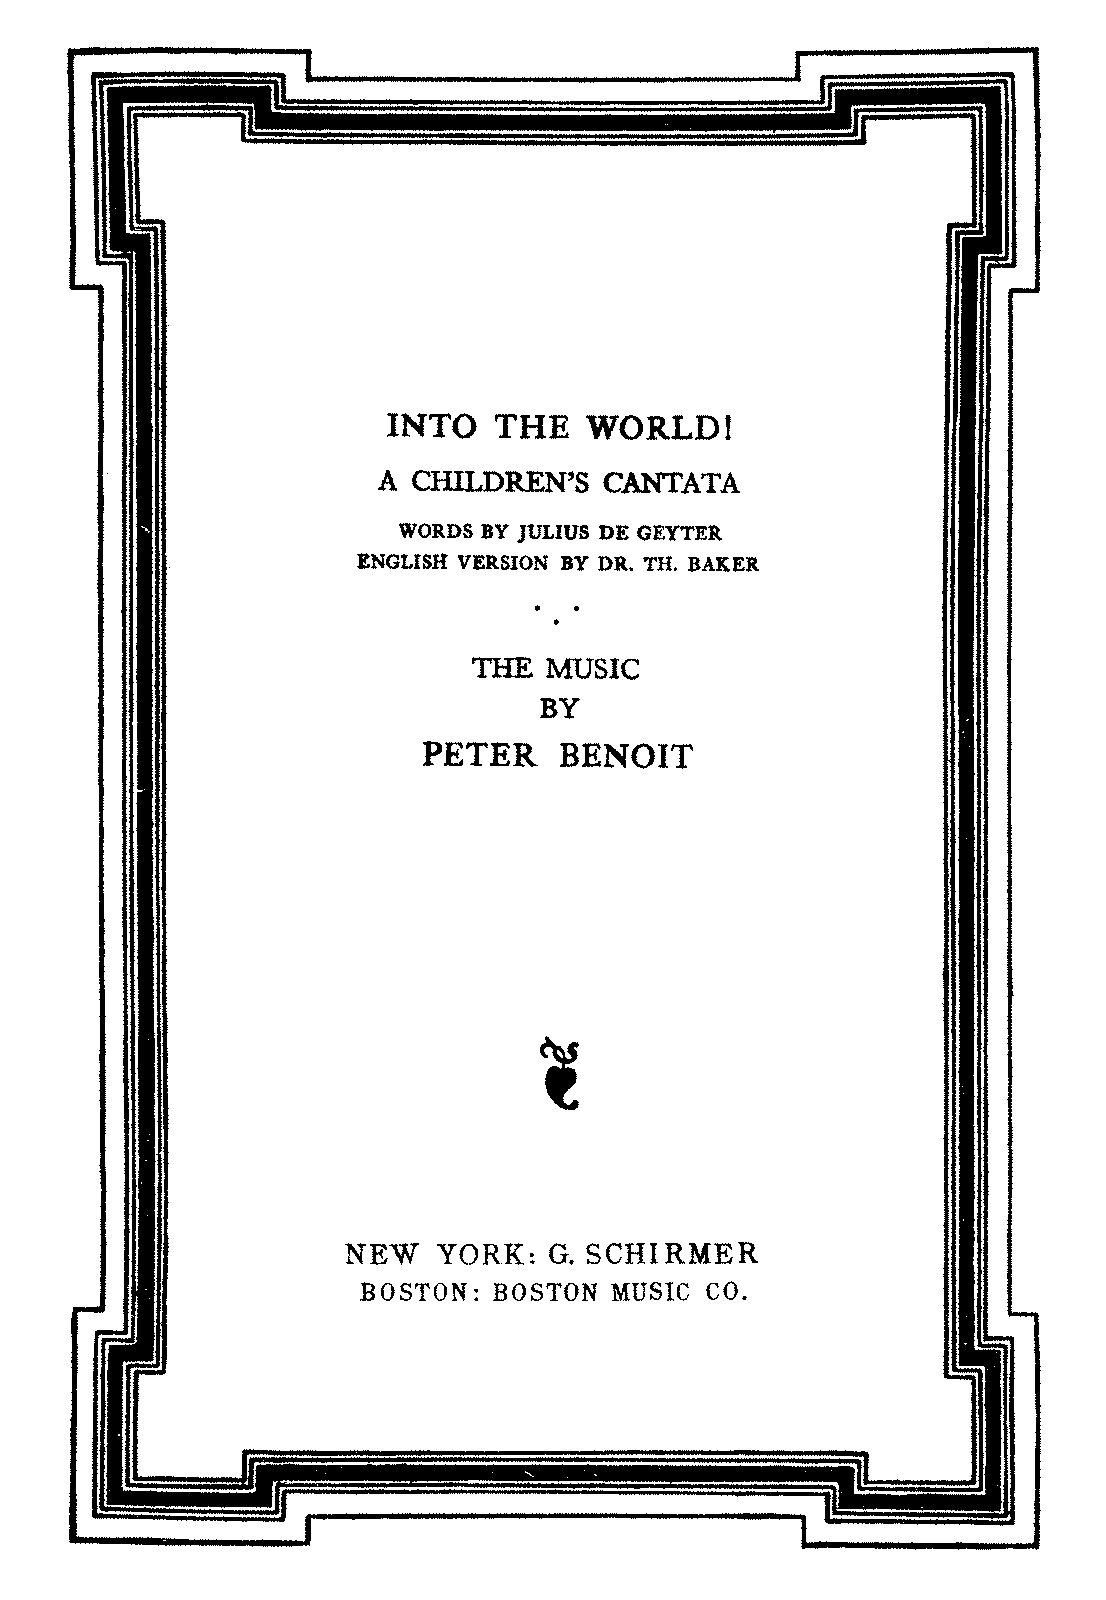 PMLP661227-PBenoit De Waereld in vocalscore english.pdf